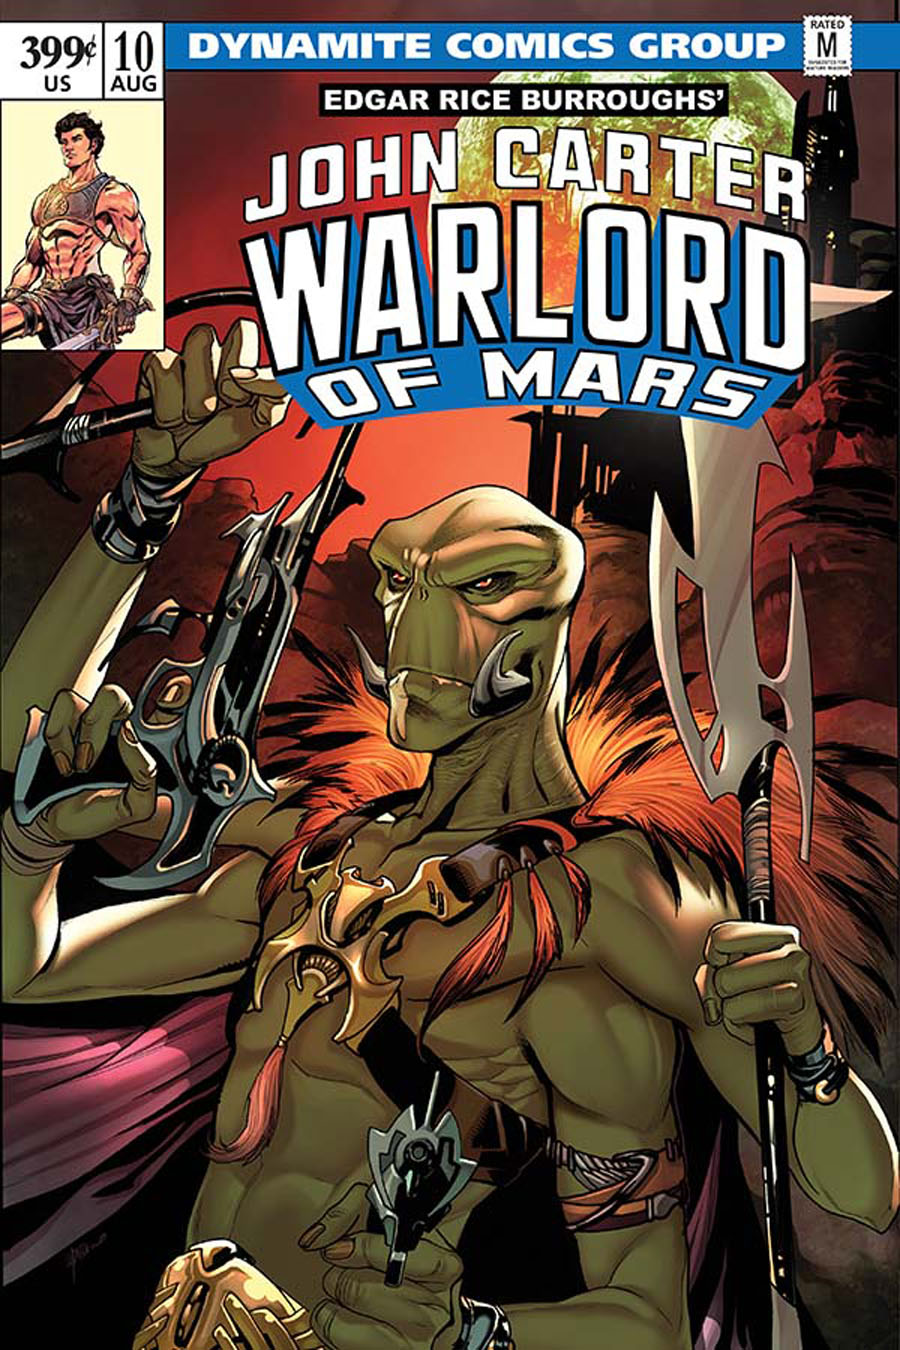 John Carter Warlord Of Mars Vol 2 #10 Cover C Variant Emanuela Lupacchino Cover